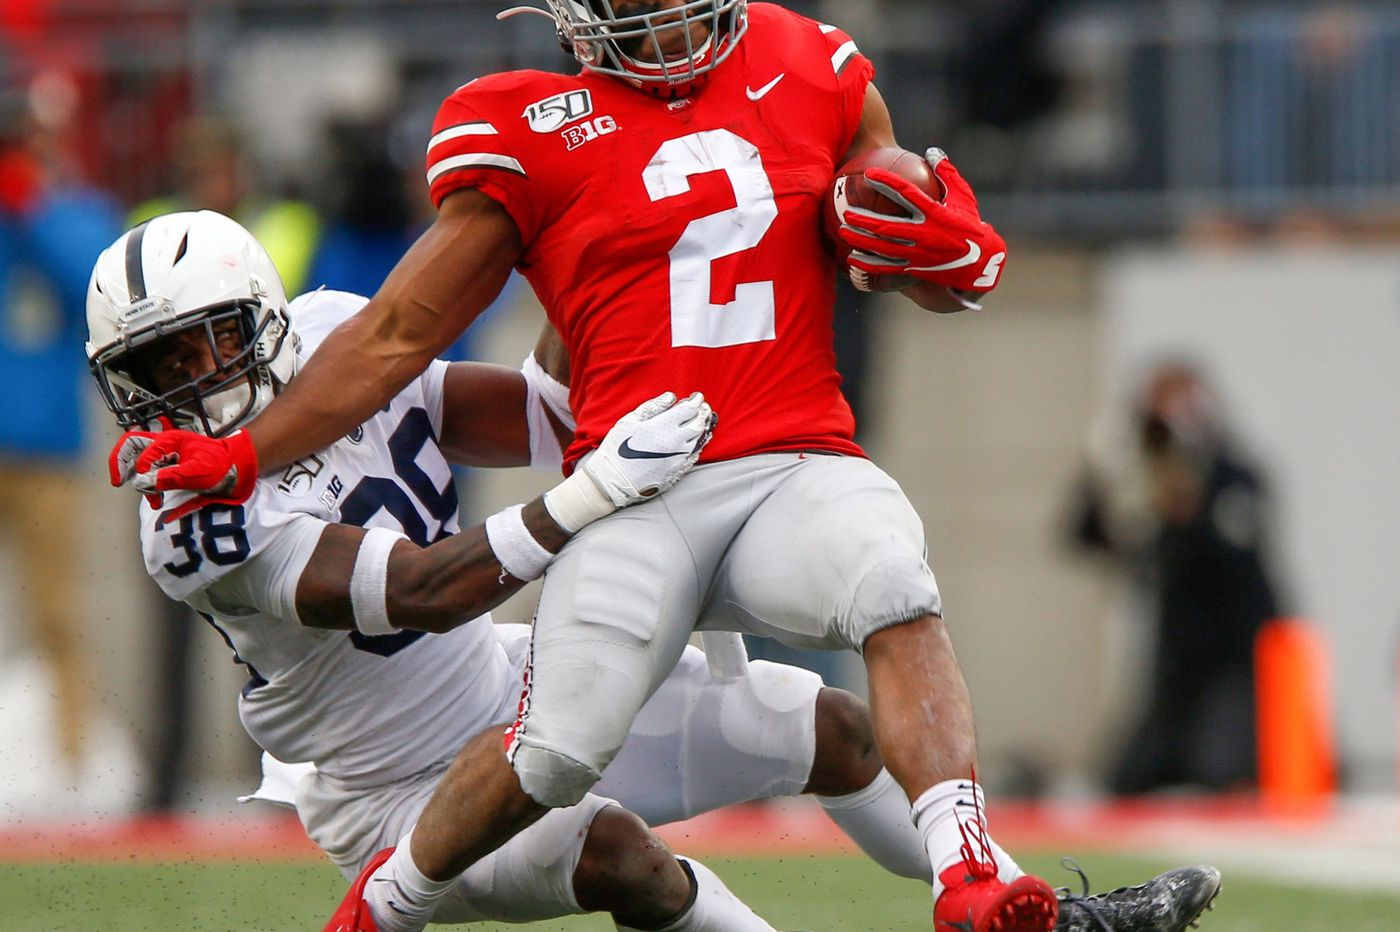 Behind defense and backup quarterback Will Levis, Penn State throws a scare into No. 2 Ohio State but loses, 28-17